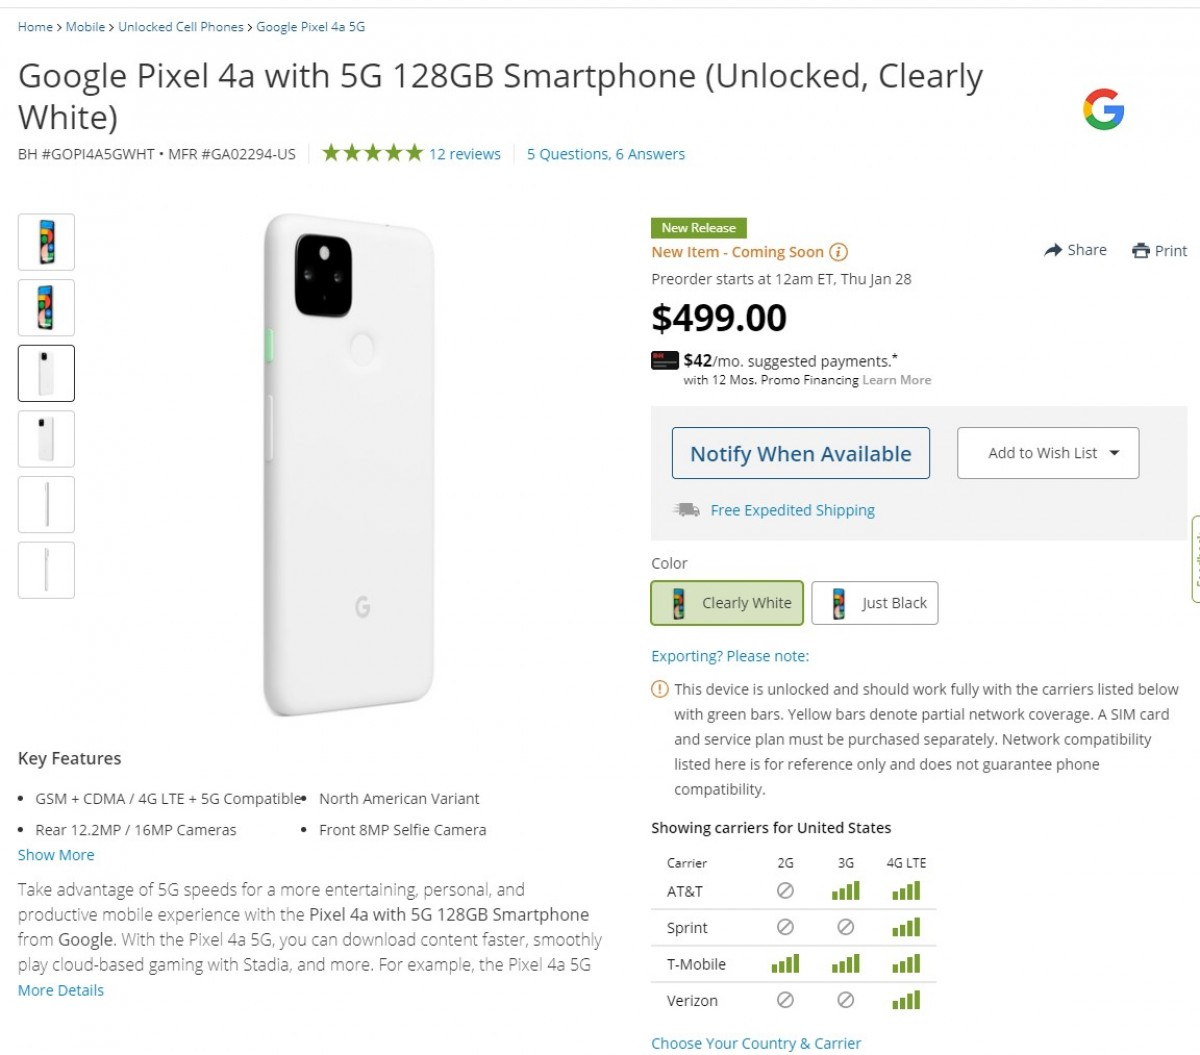 Clearly White unlocked Google Pixel 4a 5G variant arriving to the US soon